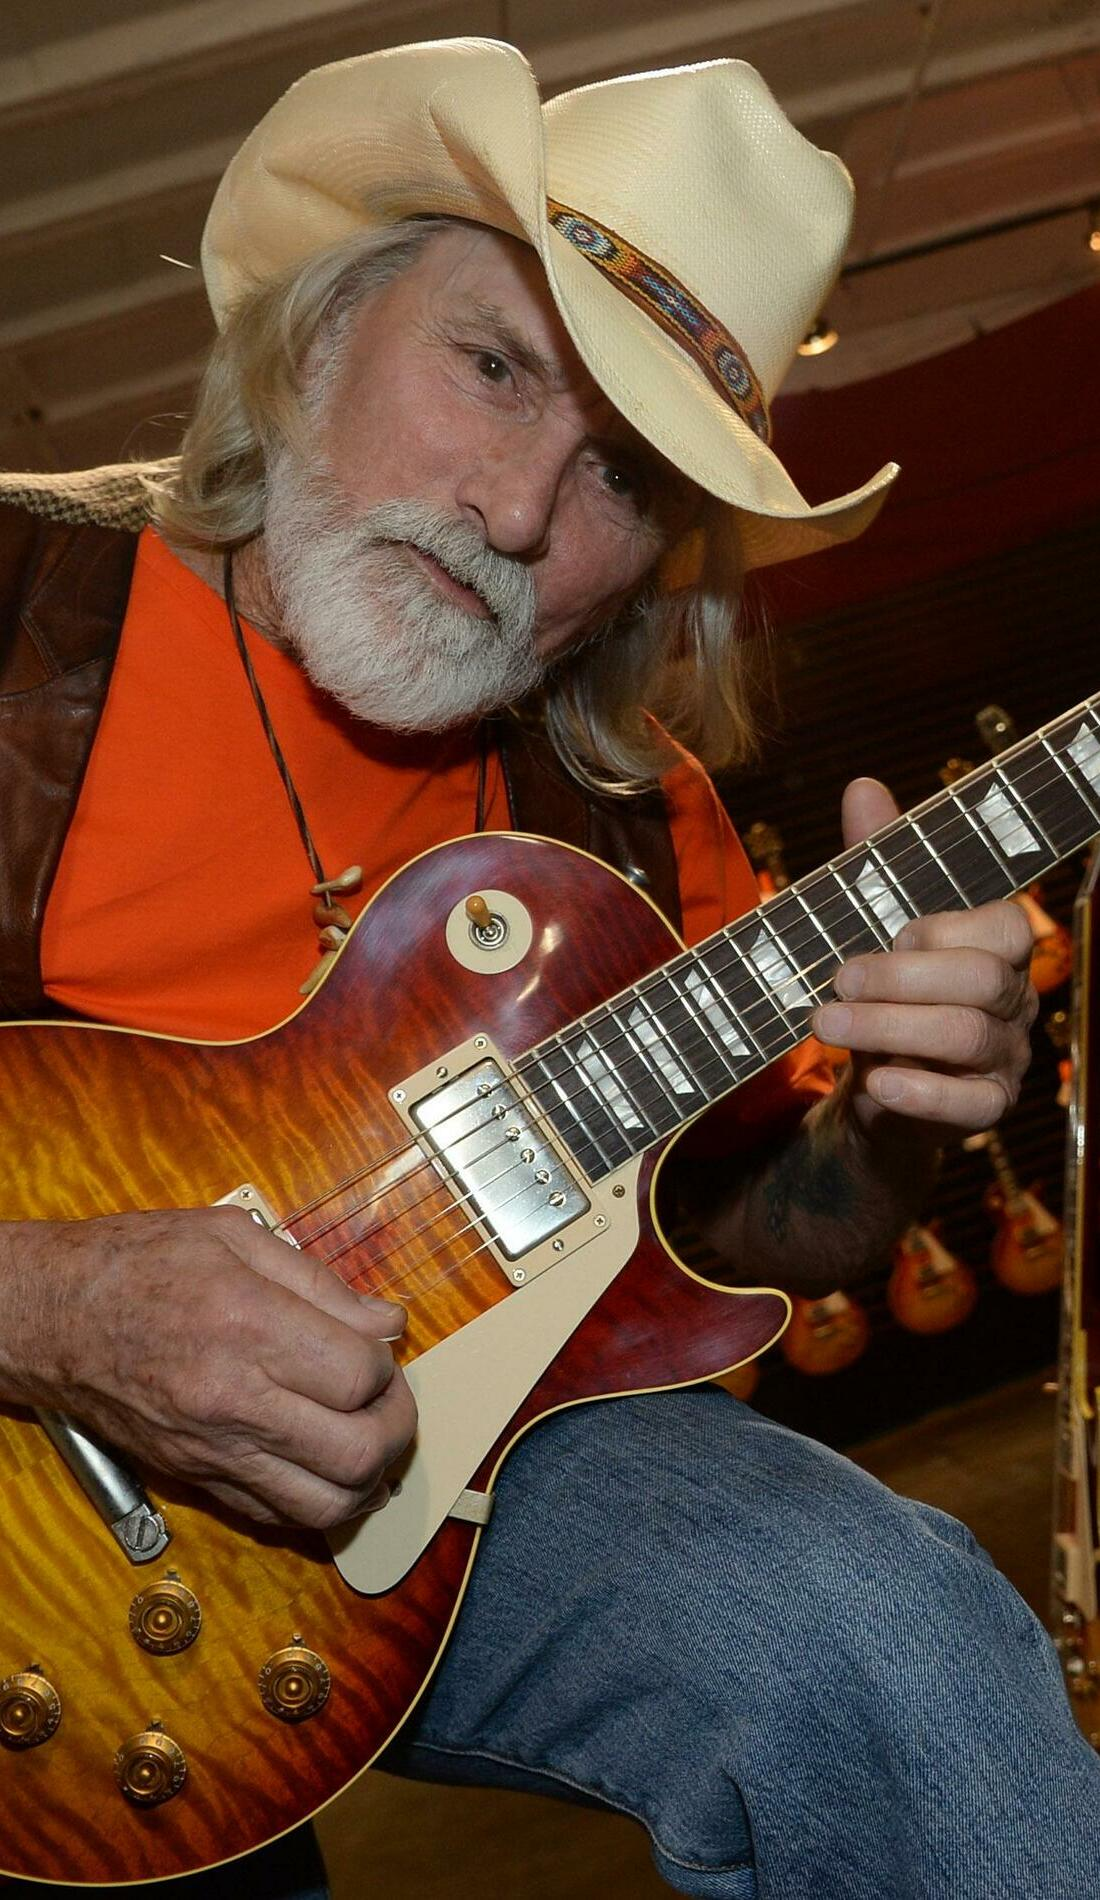 A Dickey Betts live event